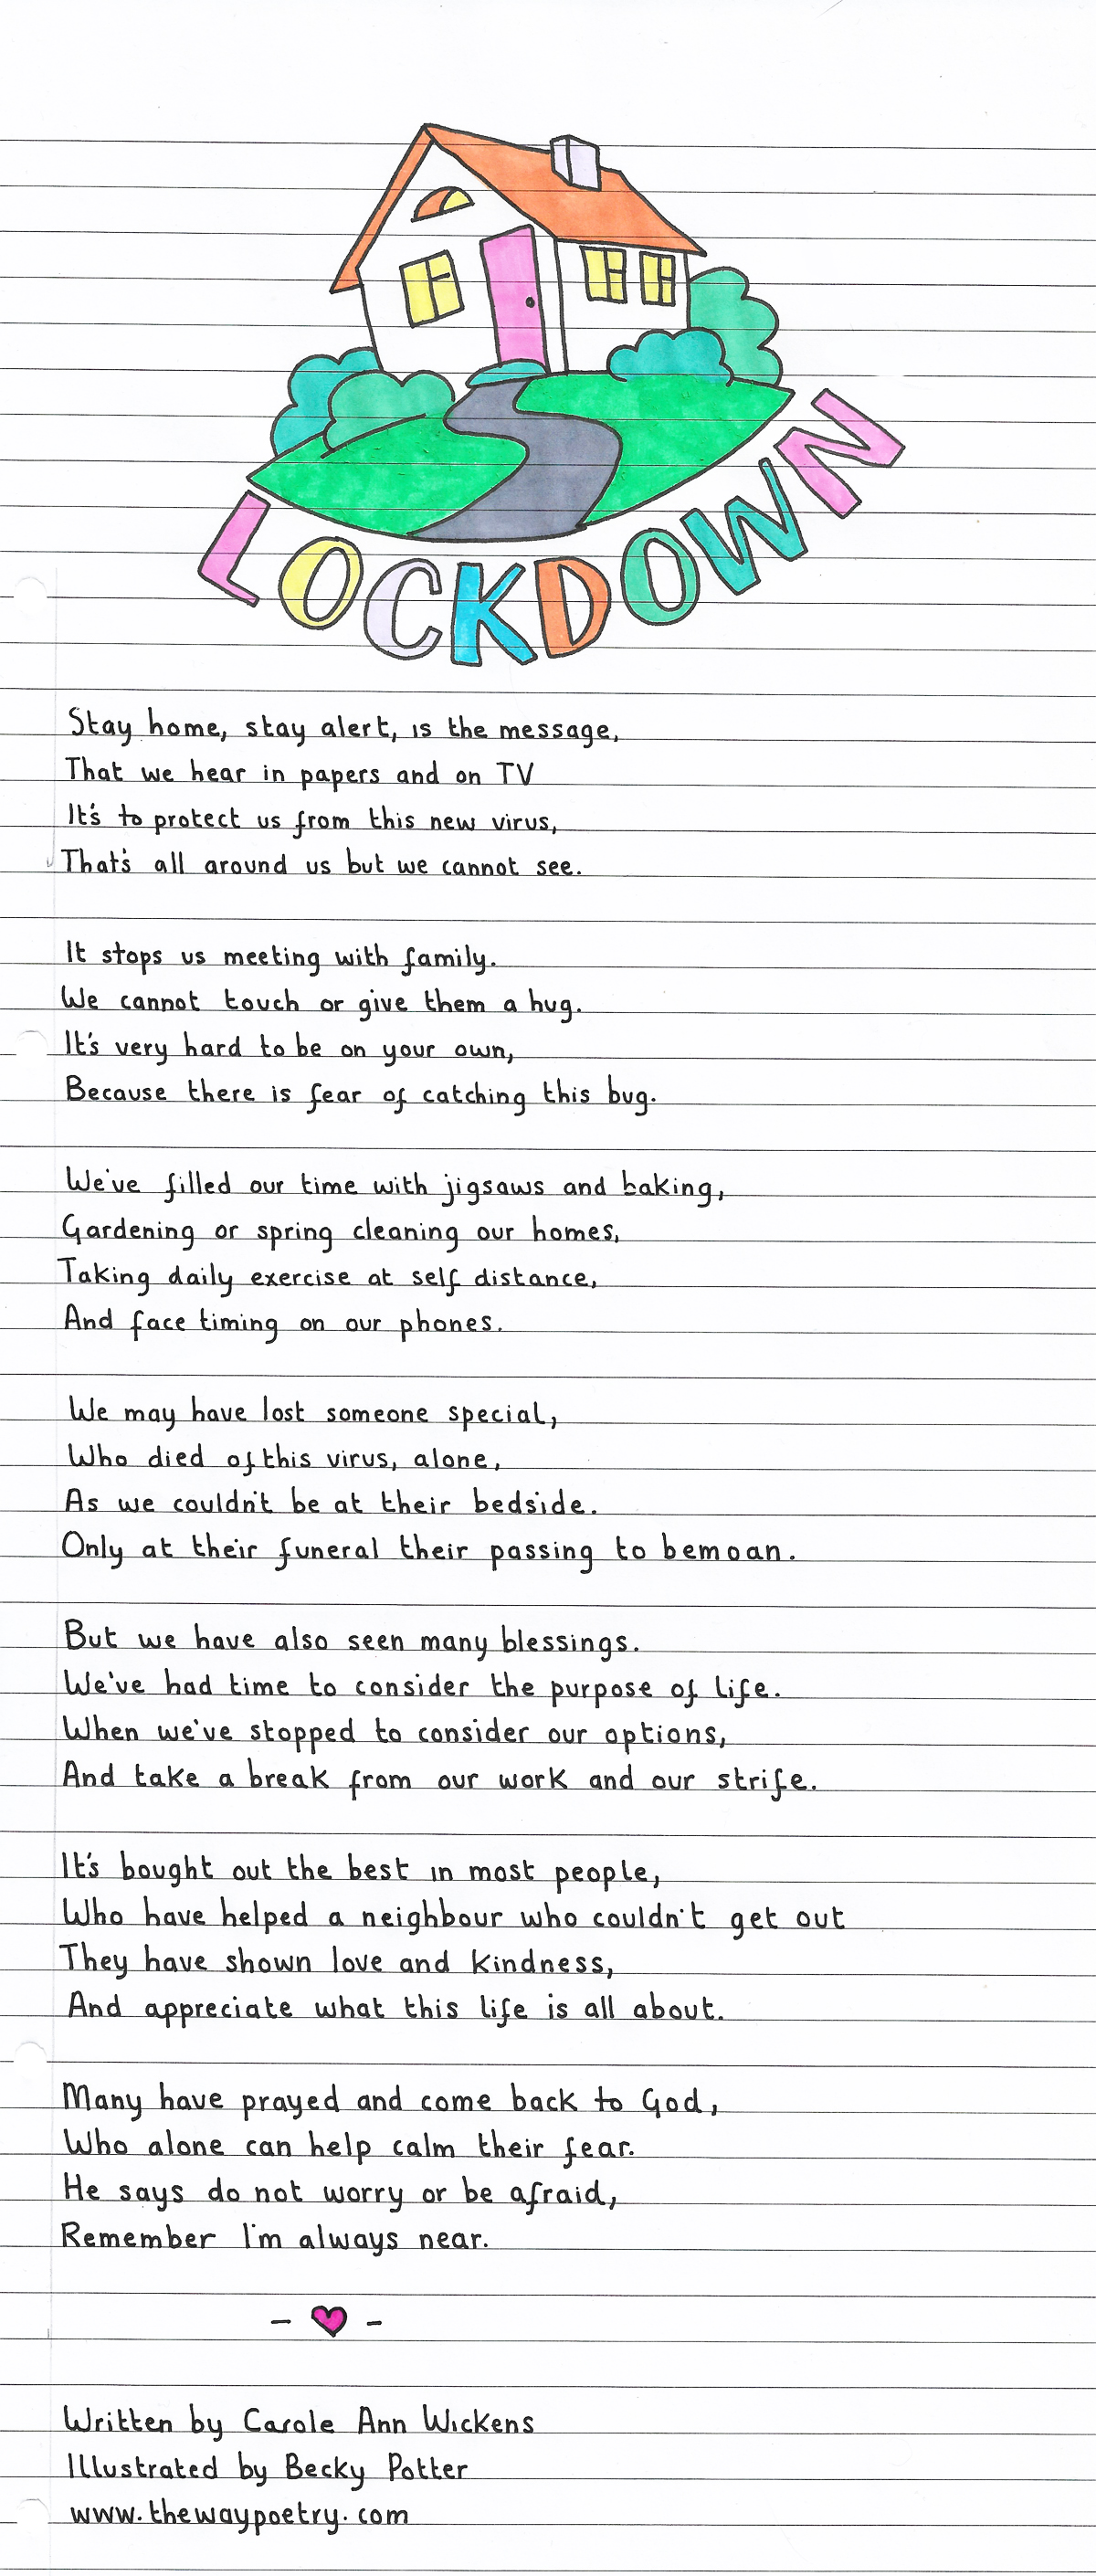 Lockdown by Carole Ann Wickens